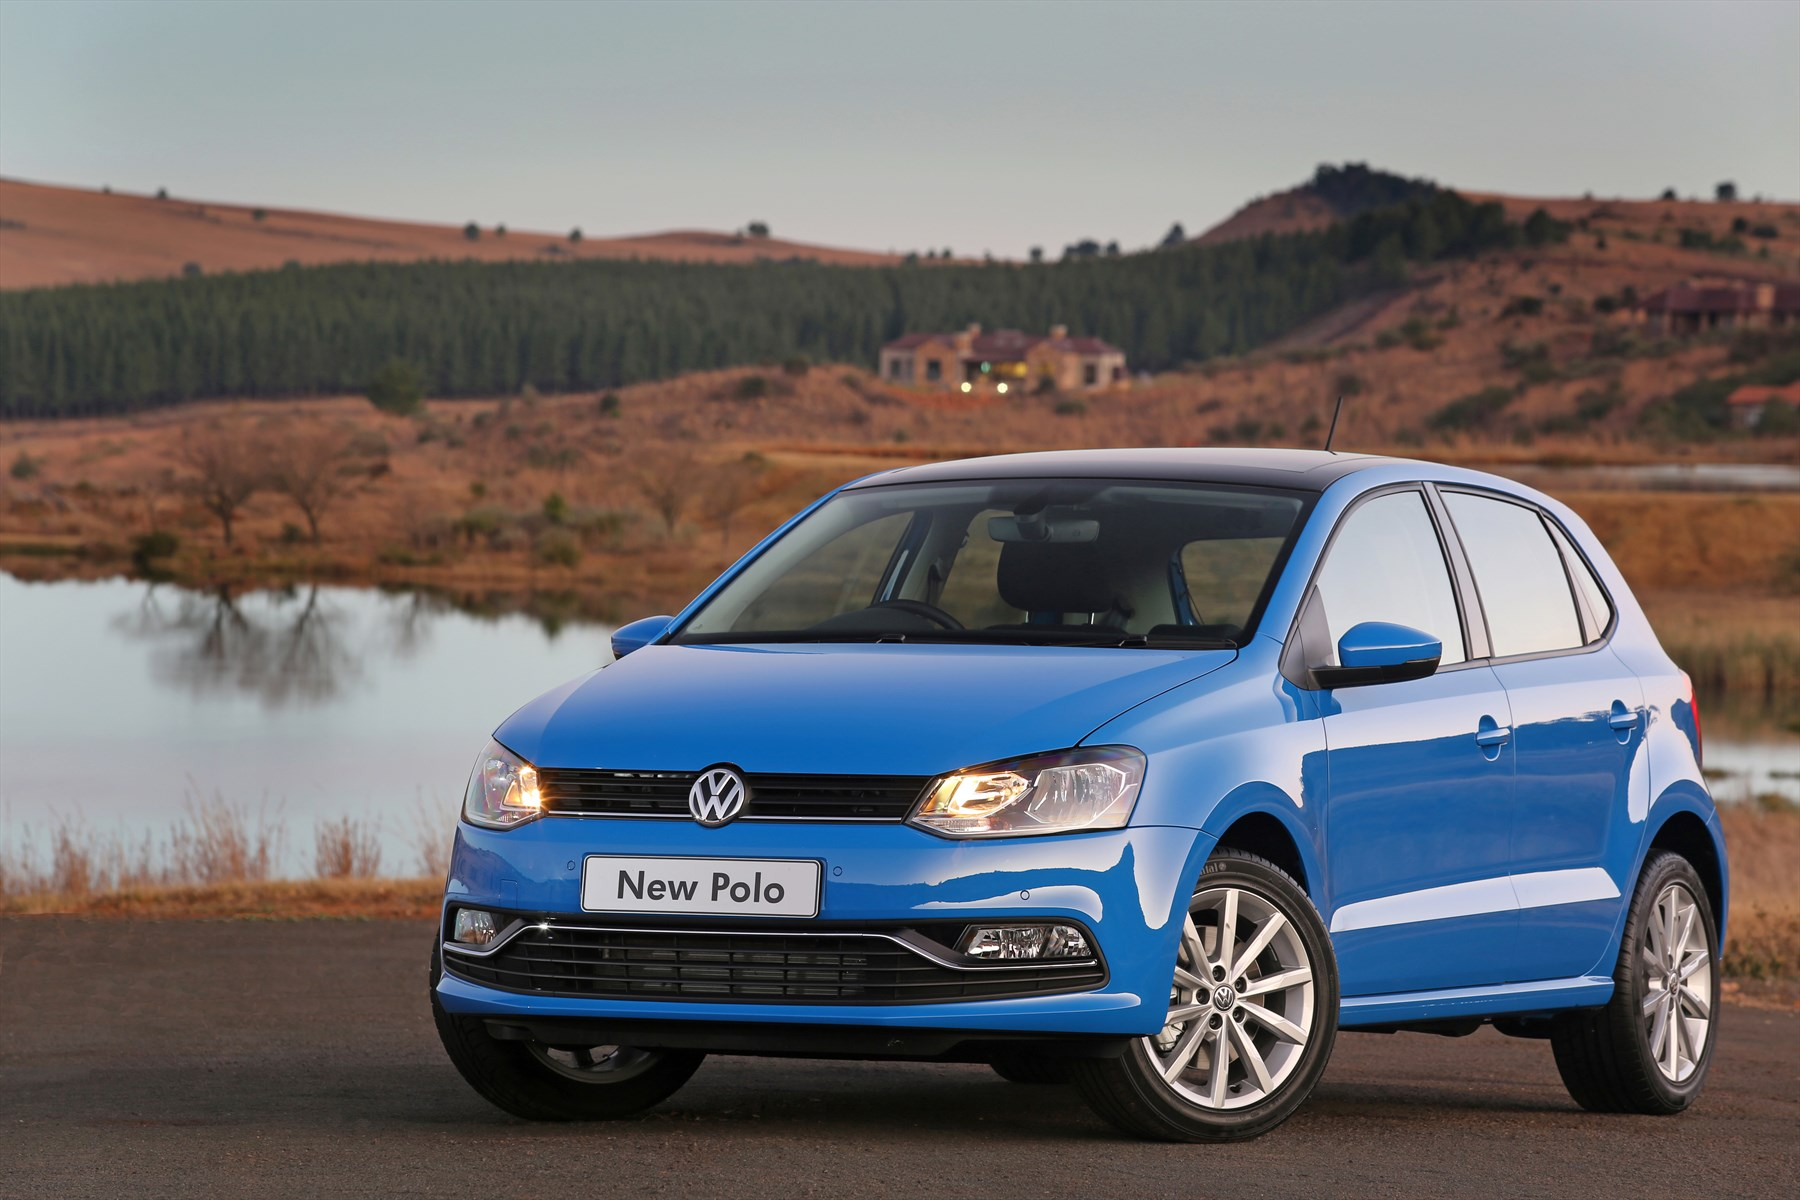 Volkswagen Polo (2014): Launch Drive